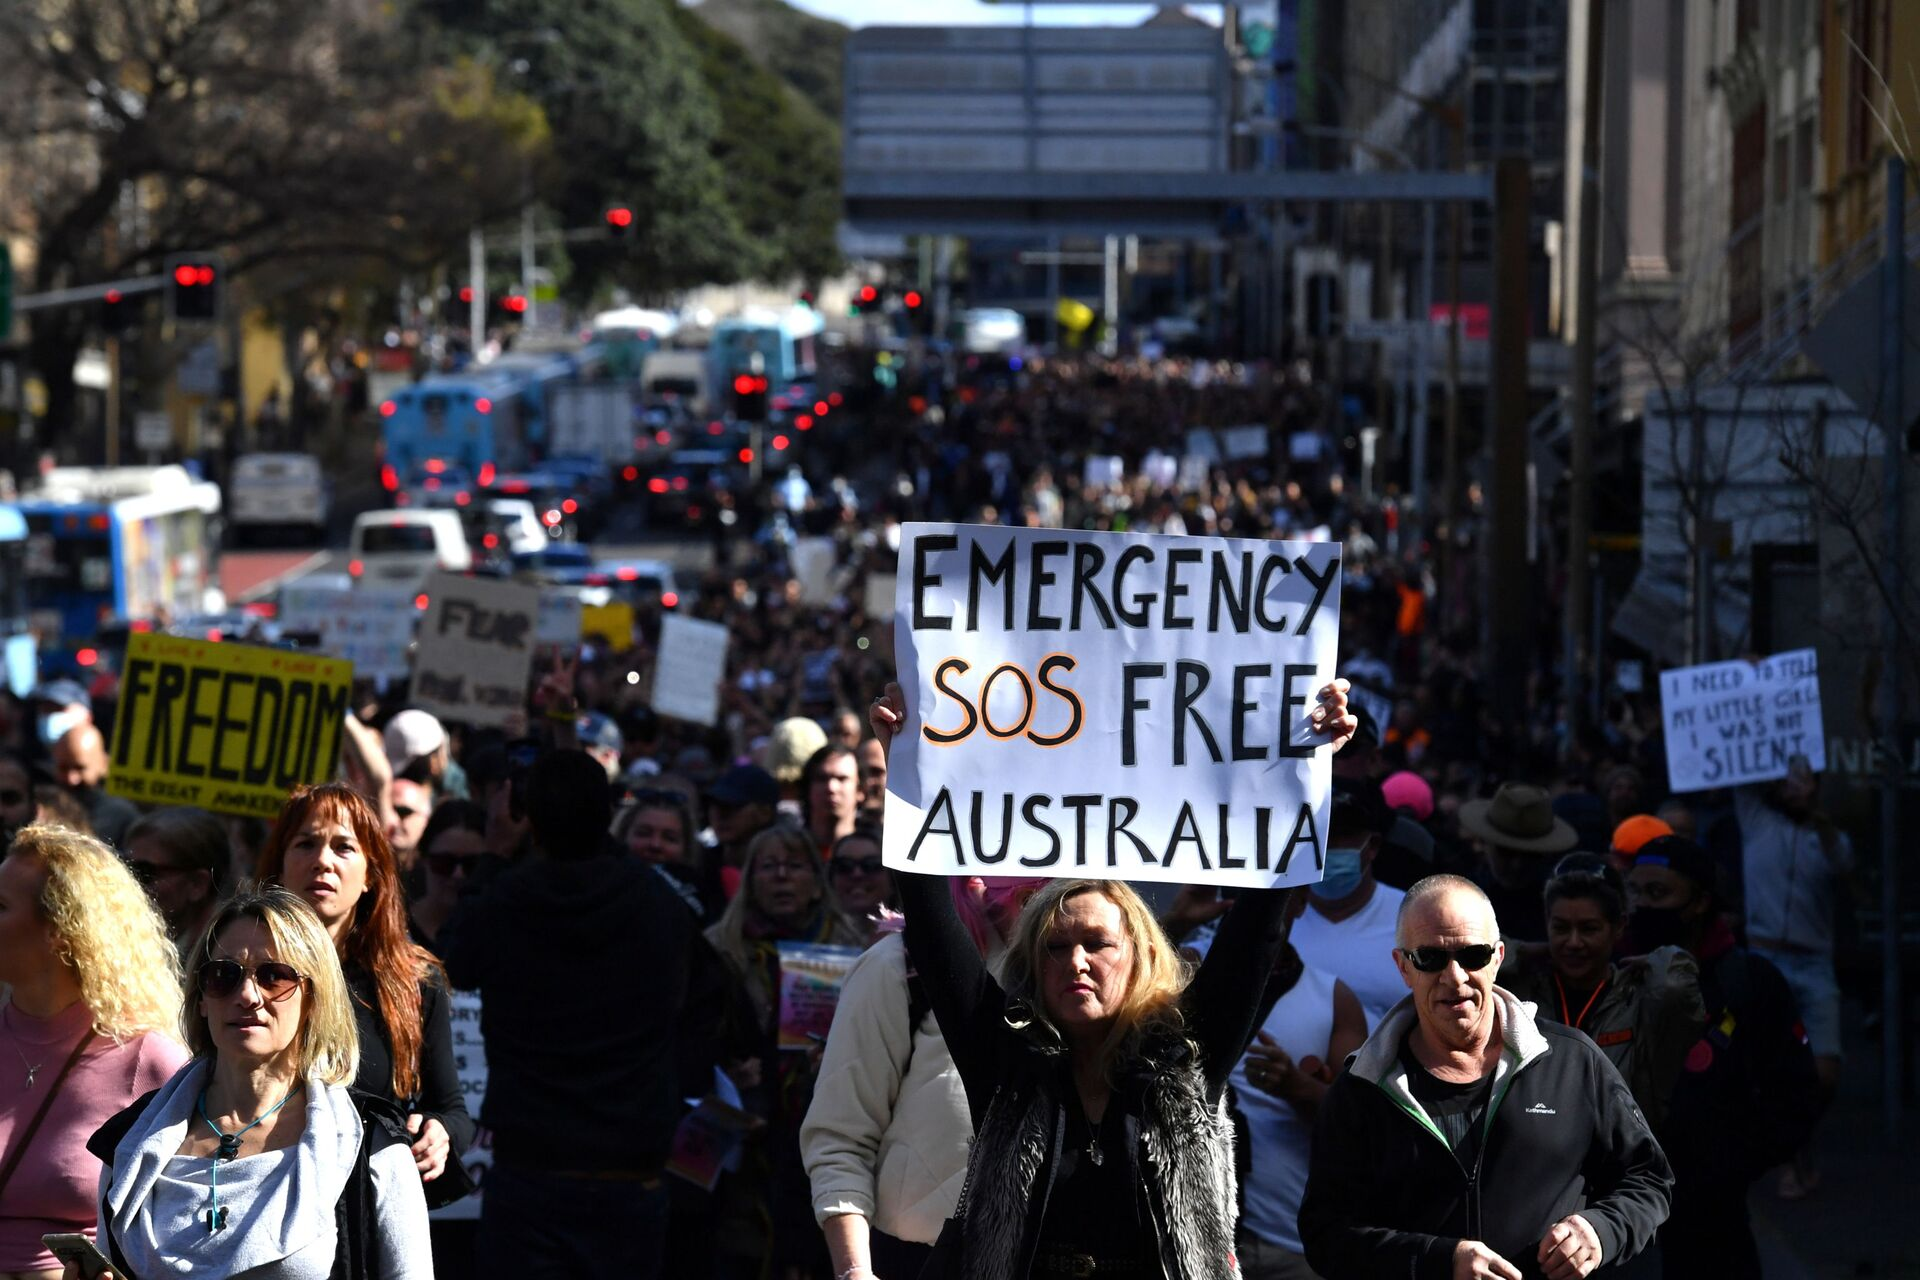 Protesters march through the city centre during an anti-lockdown rally as an outbreak of the coronavirus disease (COVID-19) affects Sydney, Australia, July 24, 2021. - Sputnik International, 1920, 18.09.2021